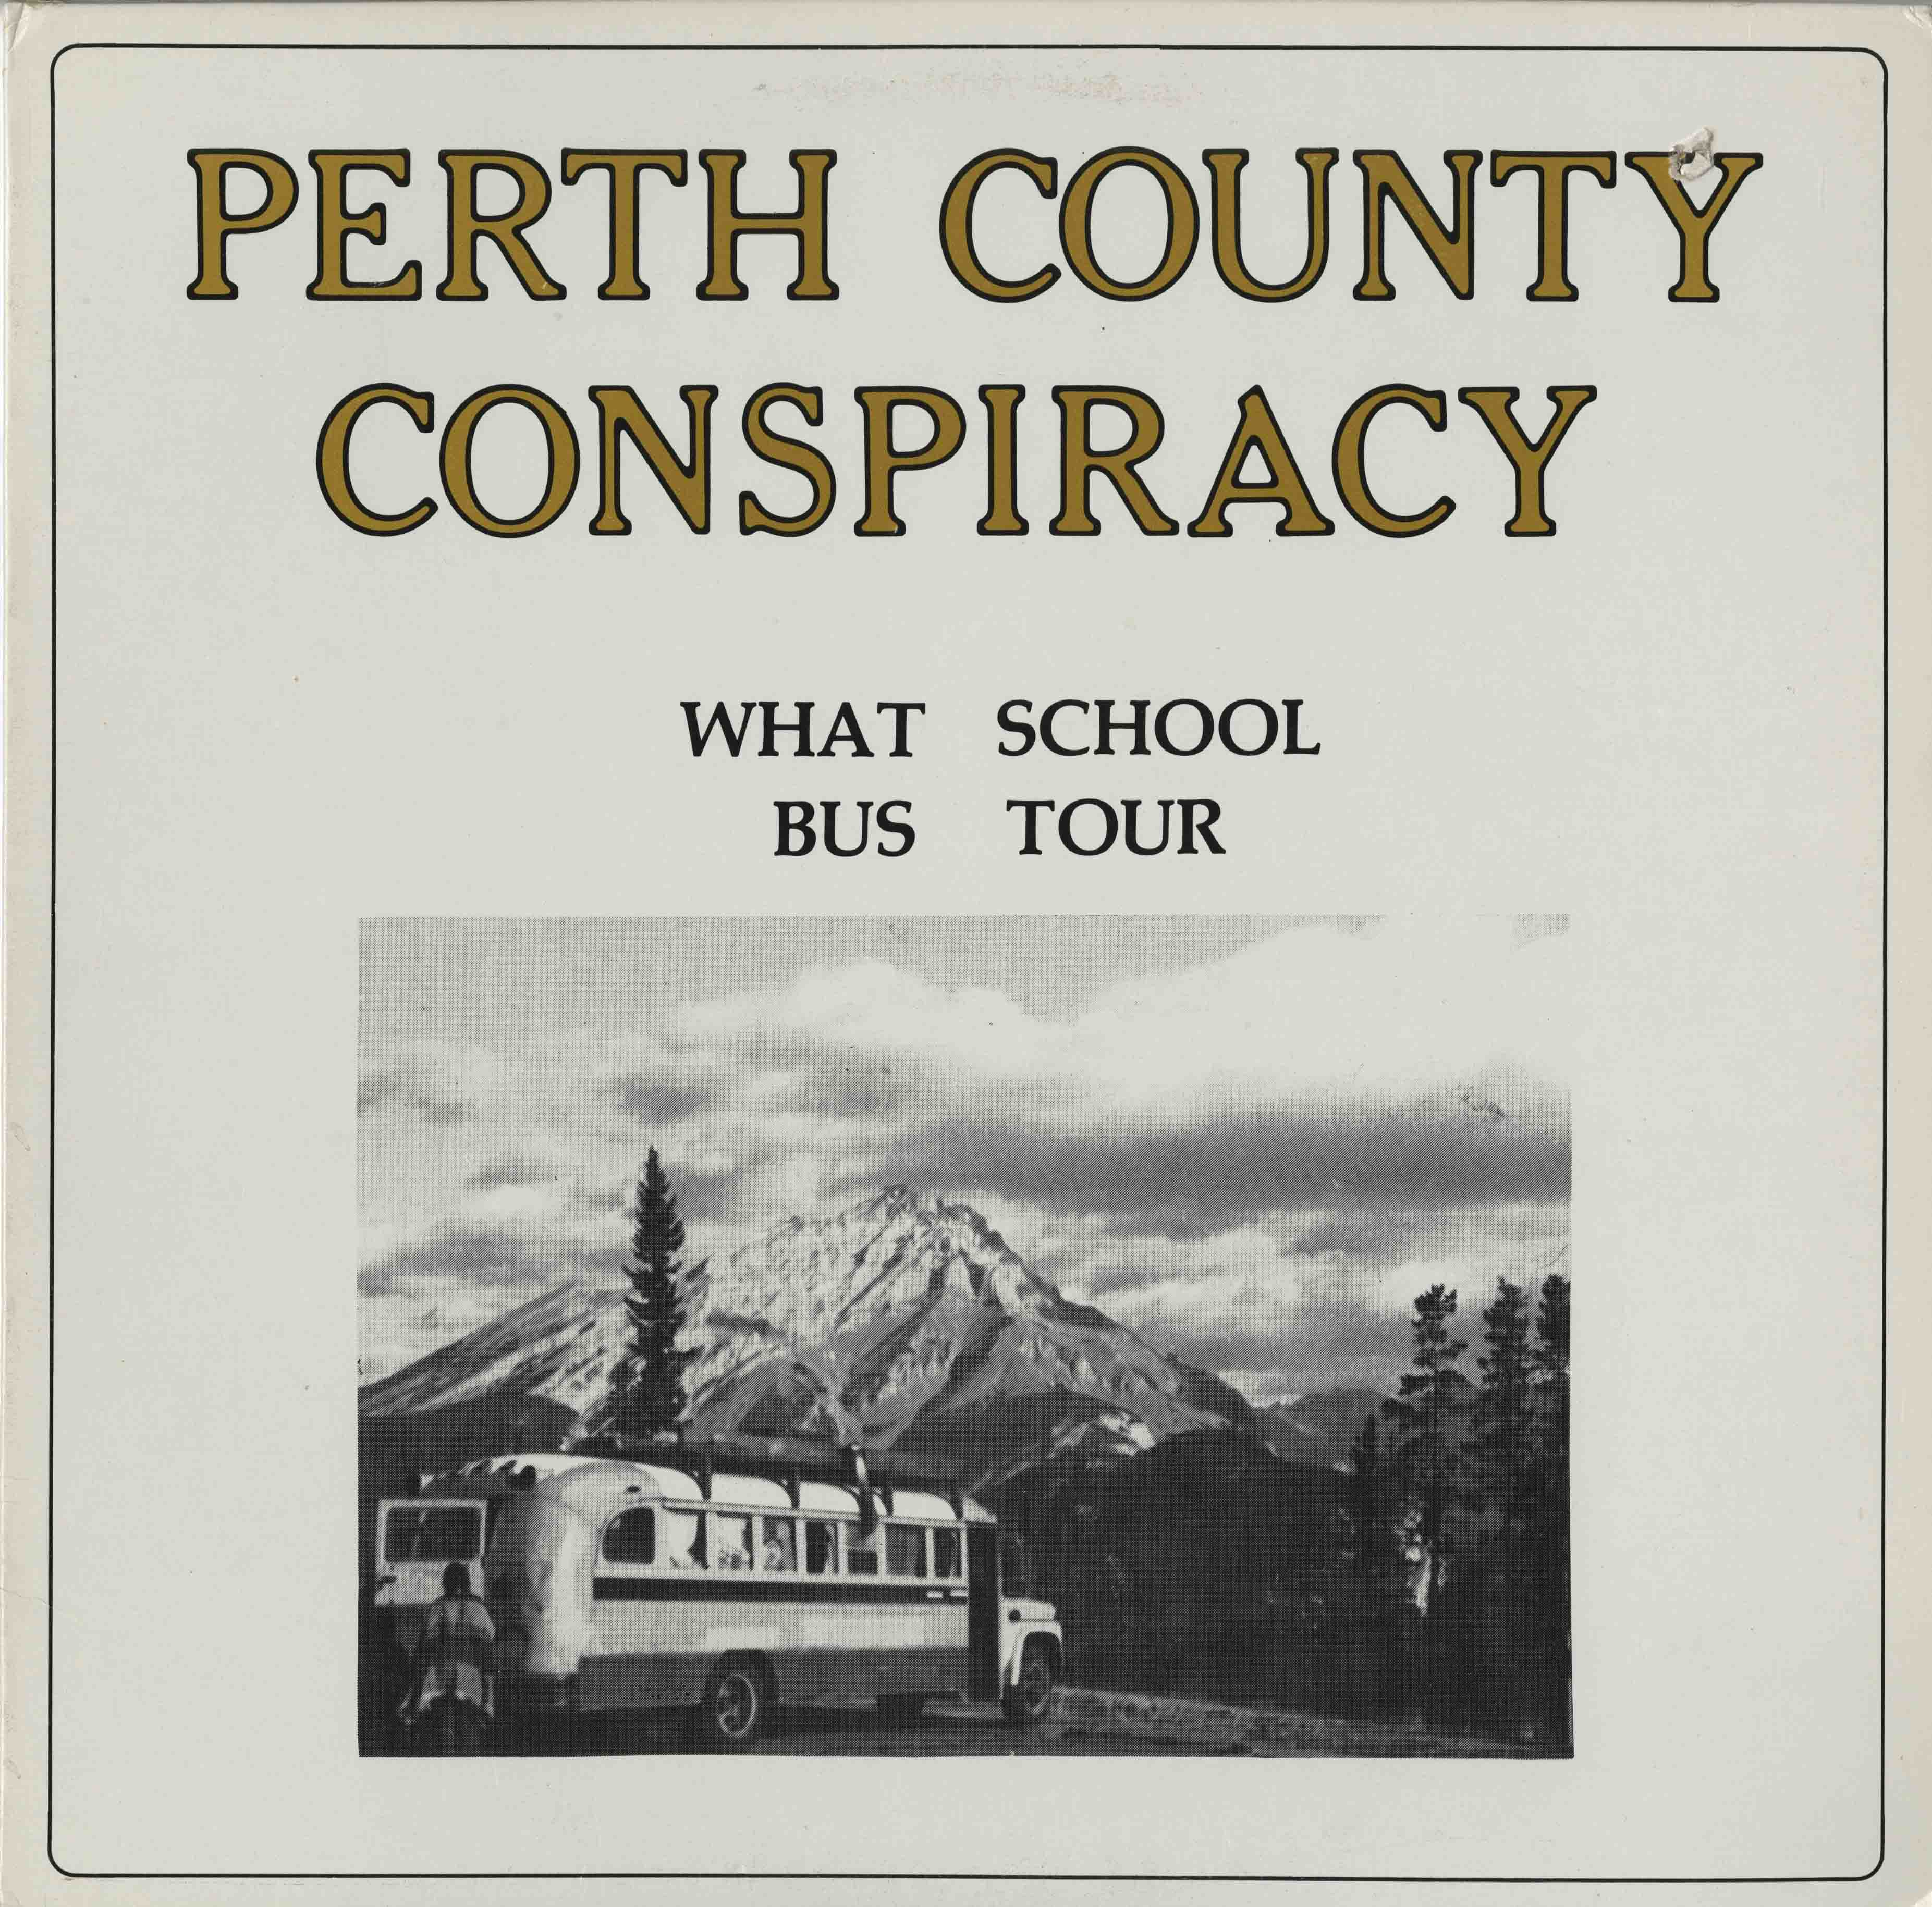 Perth County Conspiracy - What School Bus Tour